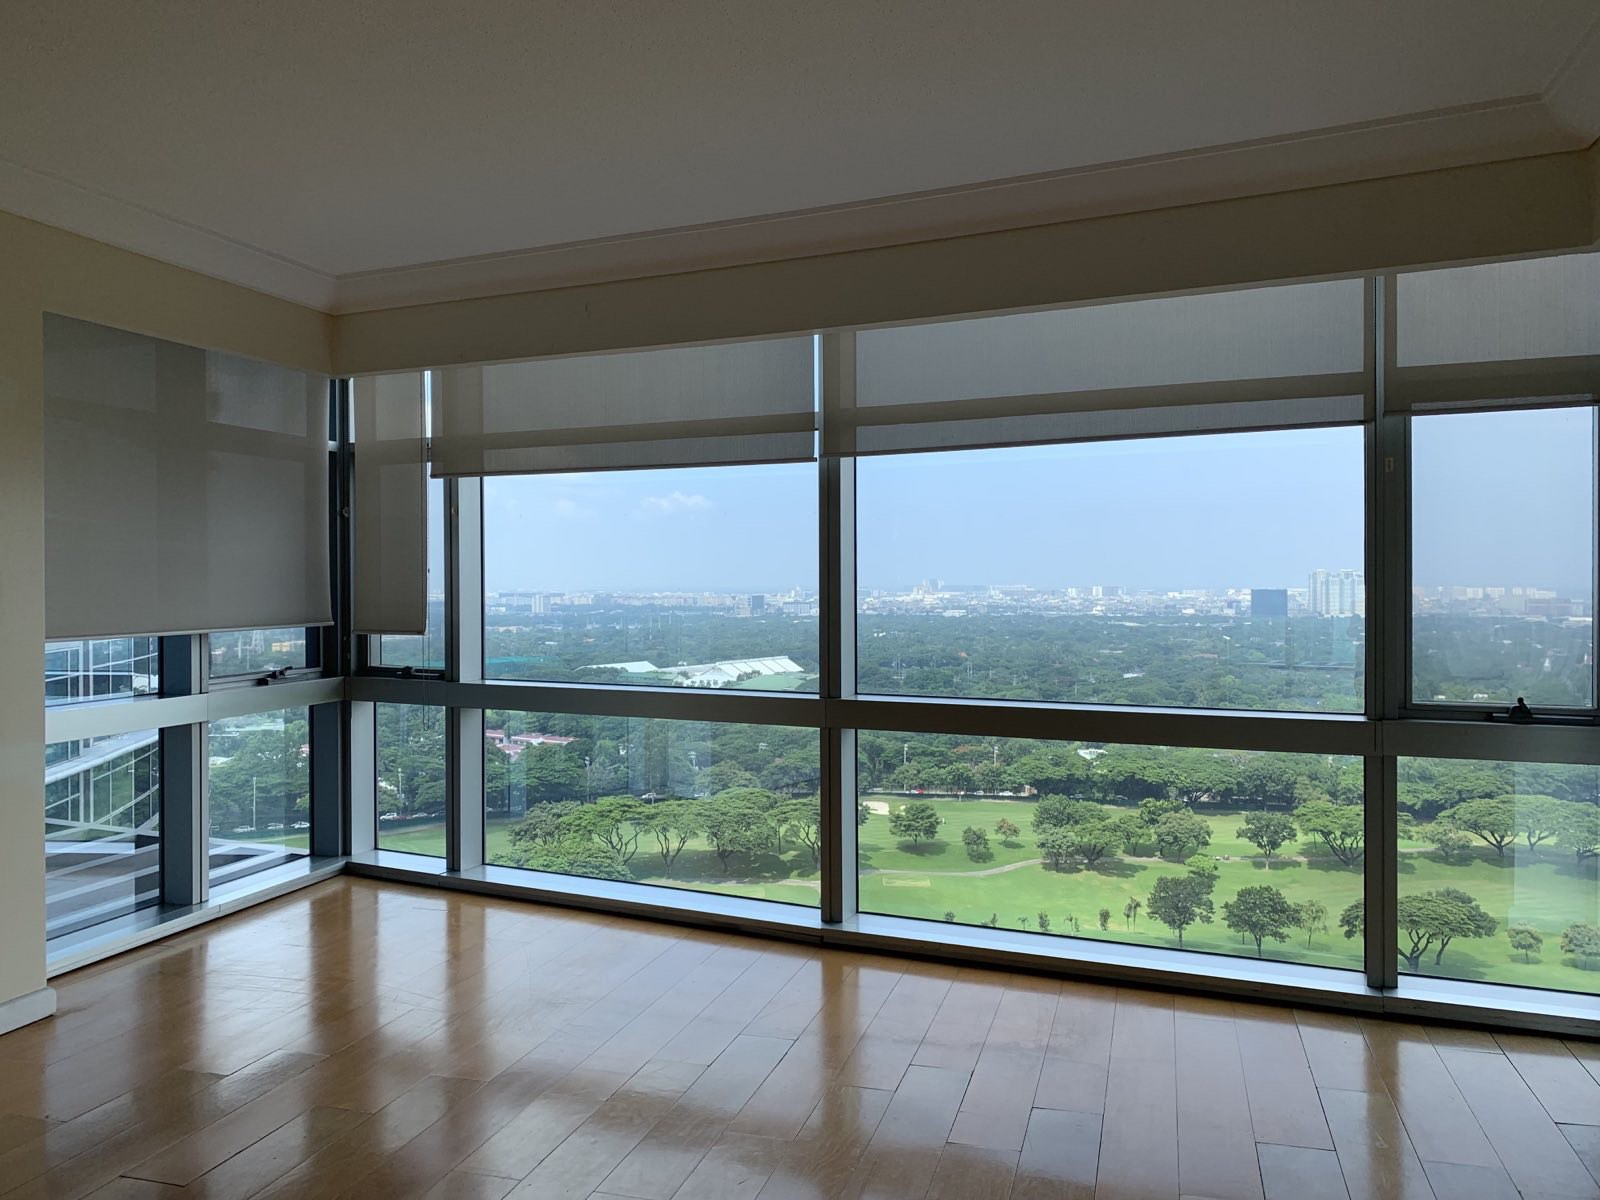 Pacific Plaza Towers BGC 3 Bedrooms for Rent in North Tower Taguig